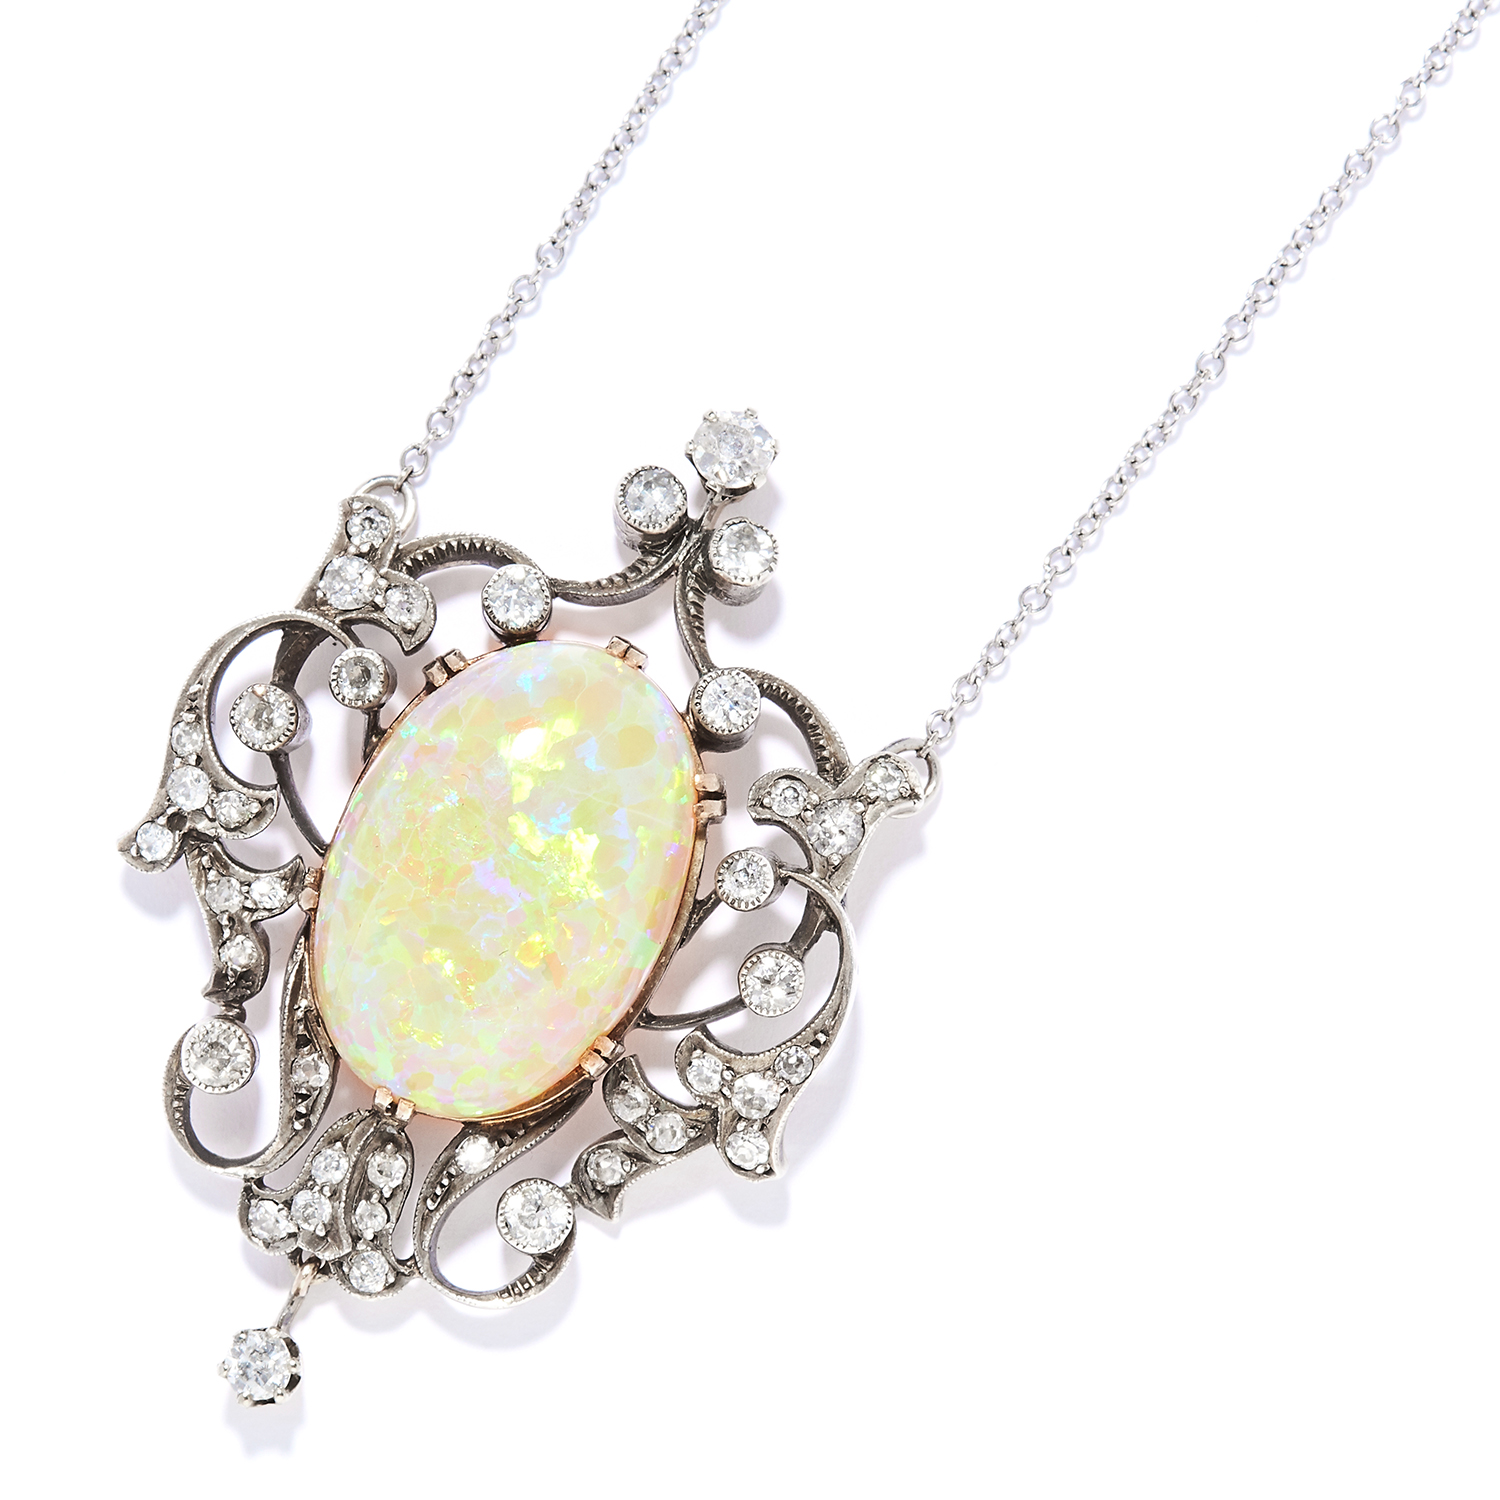 ANTIQUE OPAL AND DIAMOND PENDANT NECKLACE in yellow gold and silver, the oval cabochon opal of 18.56